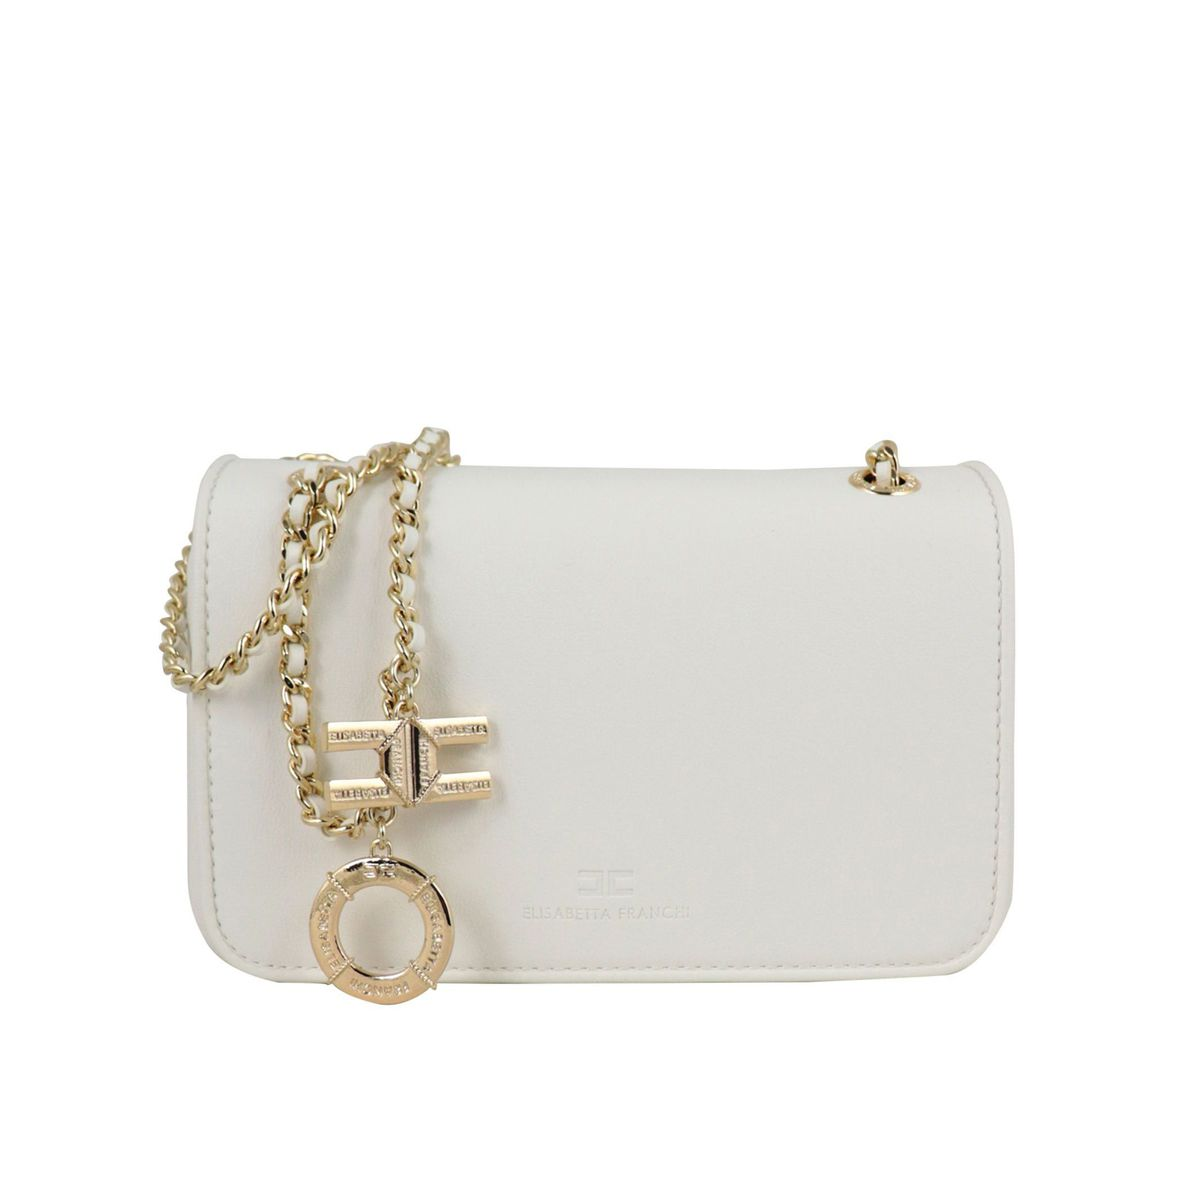 Mini bag with gold shoulder strap White Elisabetta Franchi